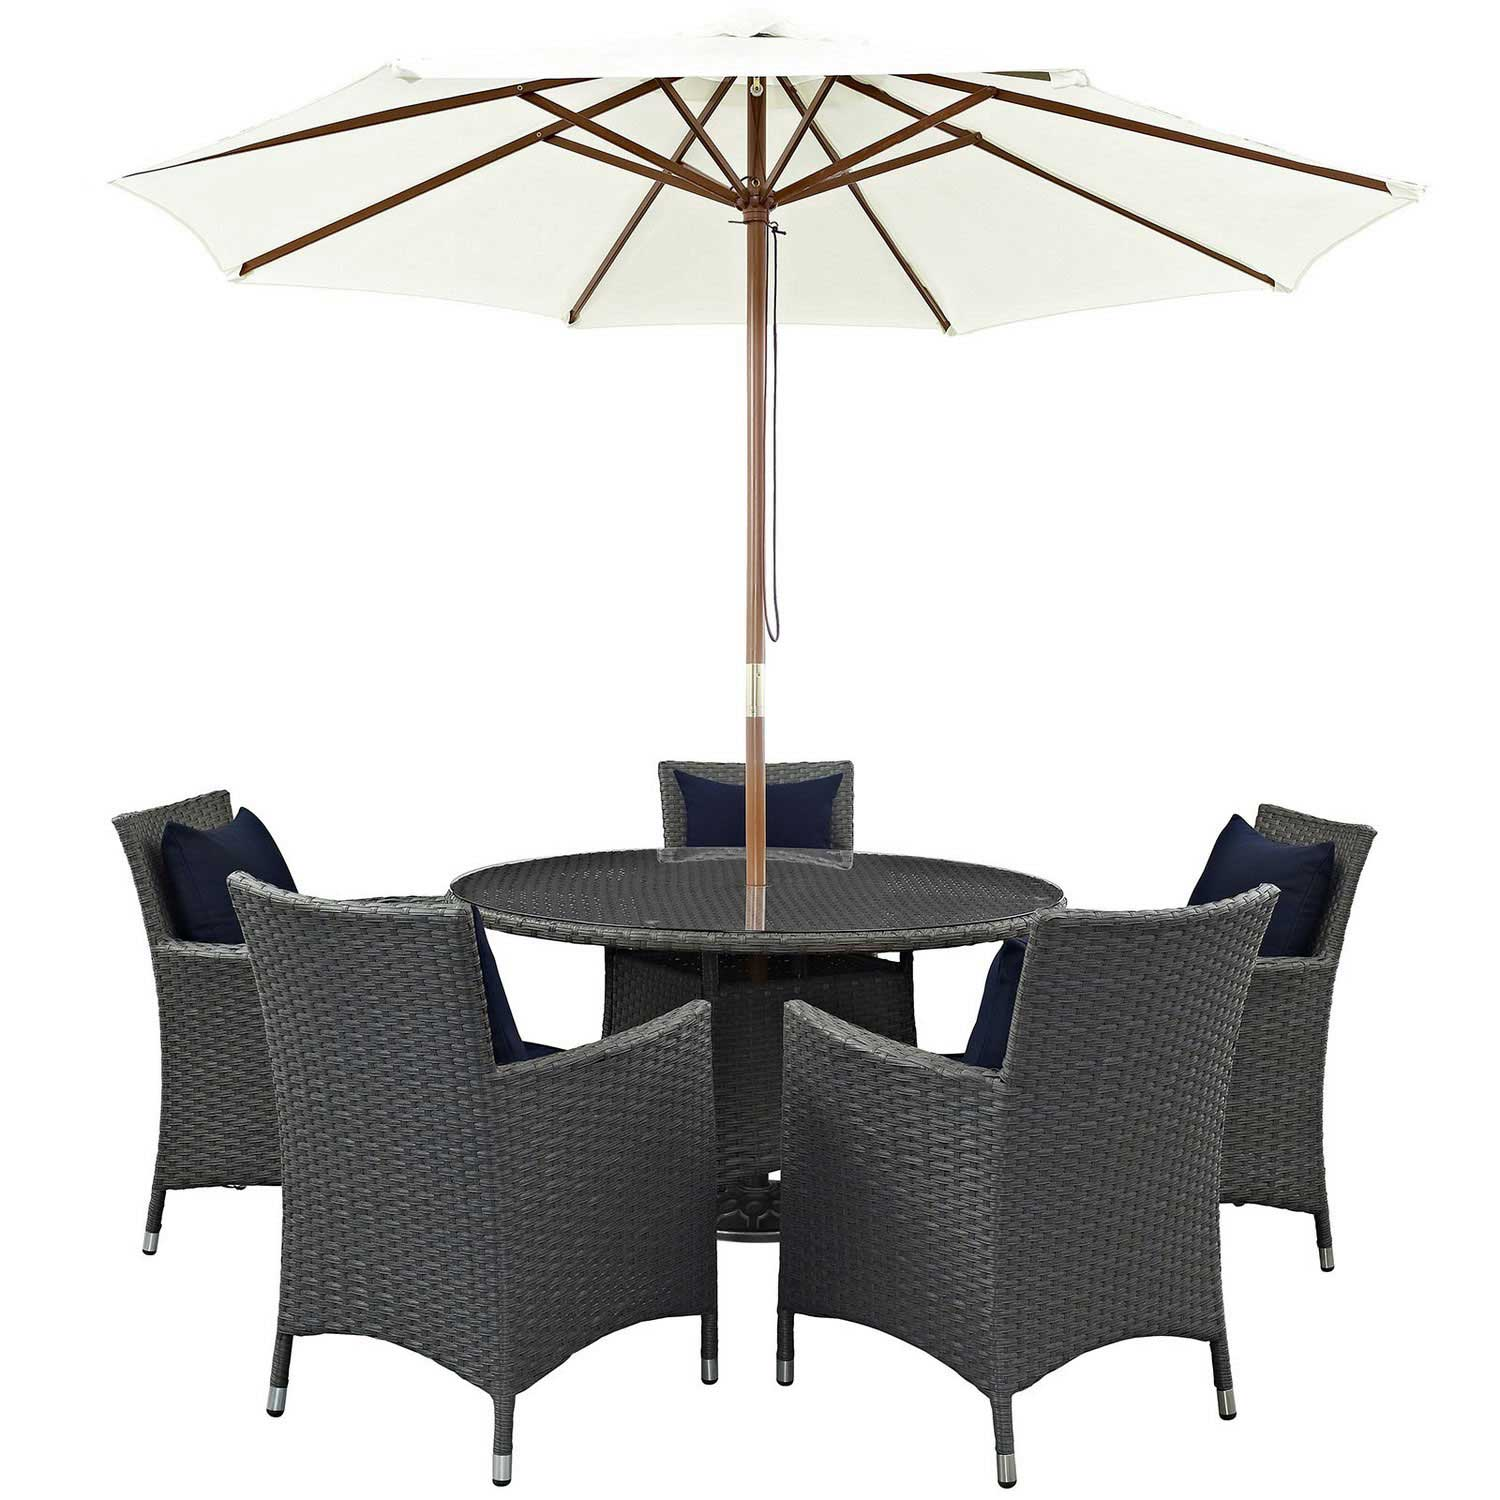 Modway Sojourn 7 Piece Outdoor Patio Sunbrella Dining Set - Canvas Navy